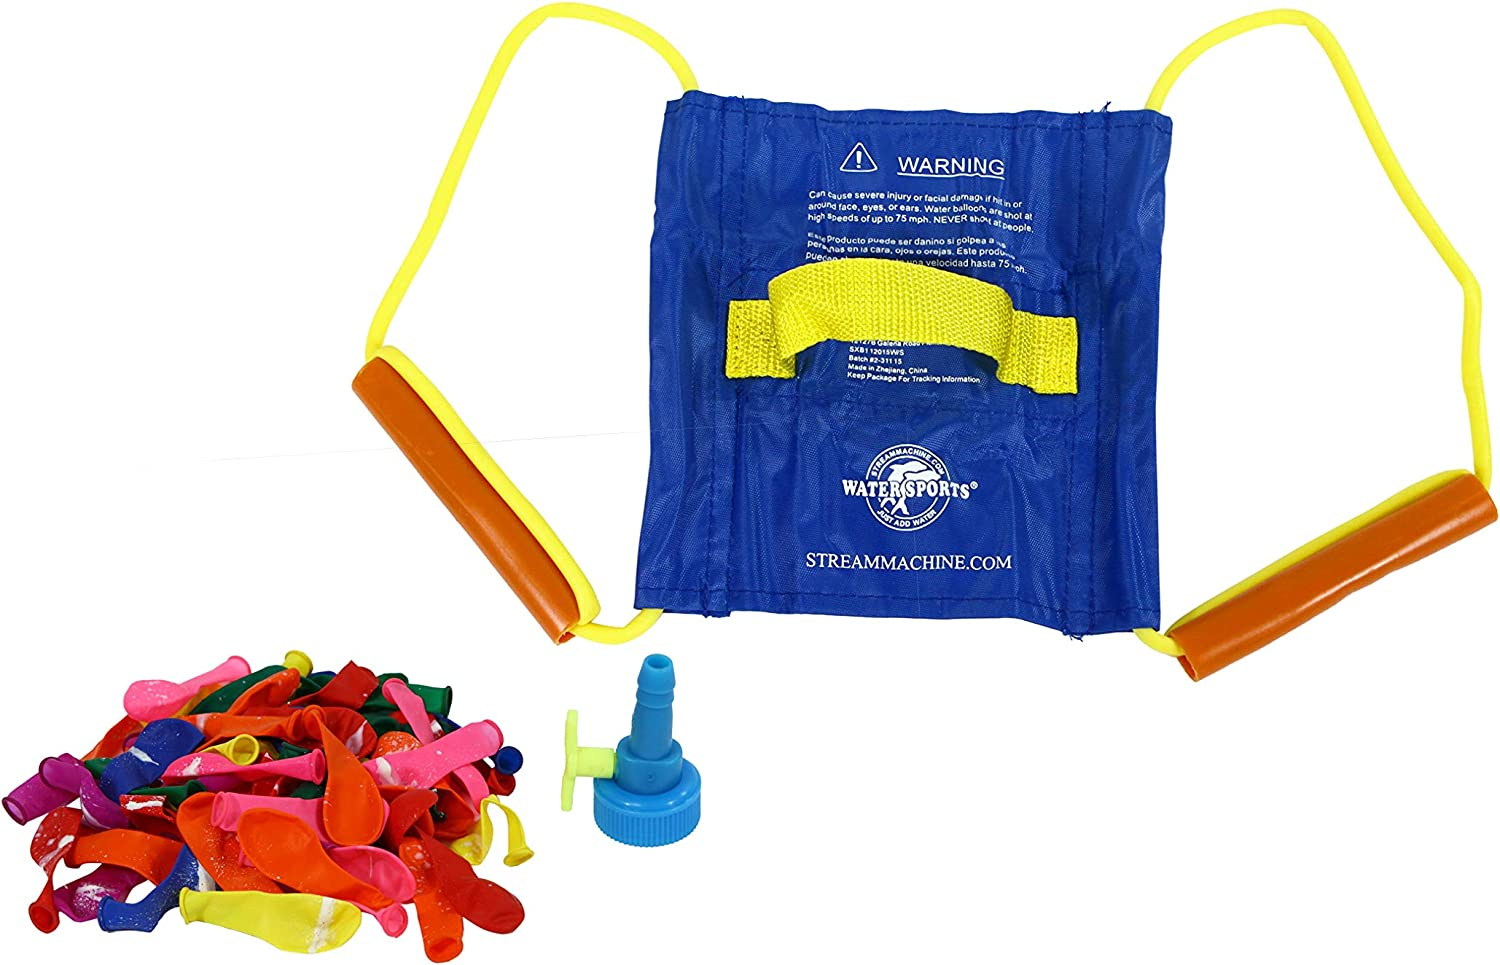 Baltimore Mall Water Sports 3 Person Balloon Launcher Long Beach Mall Ballo 72 with